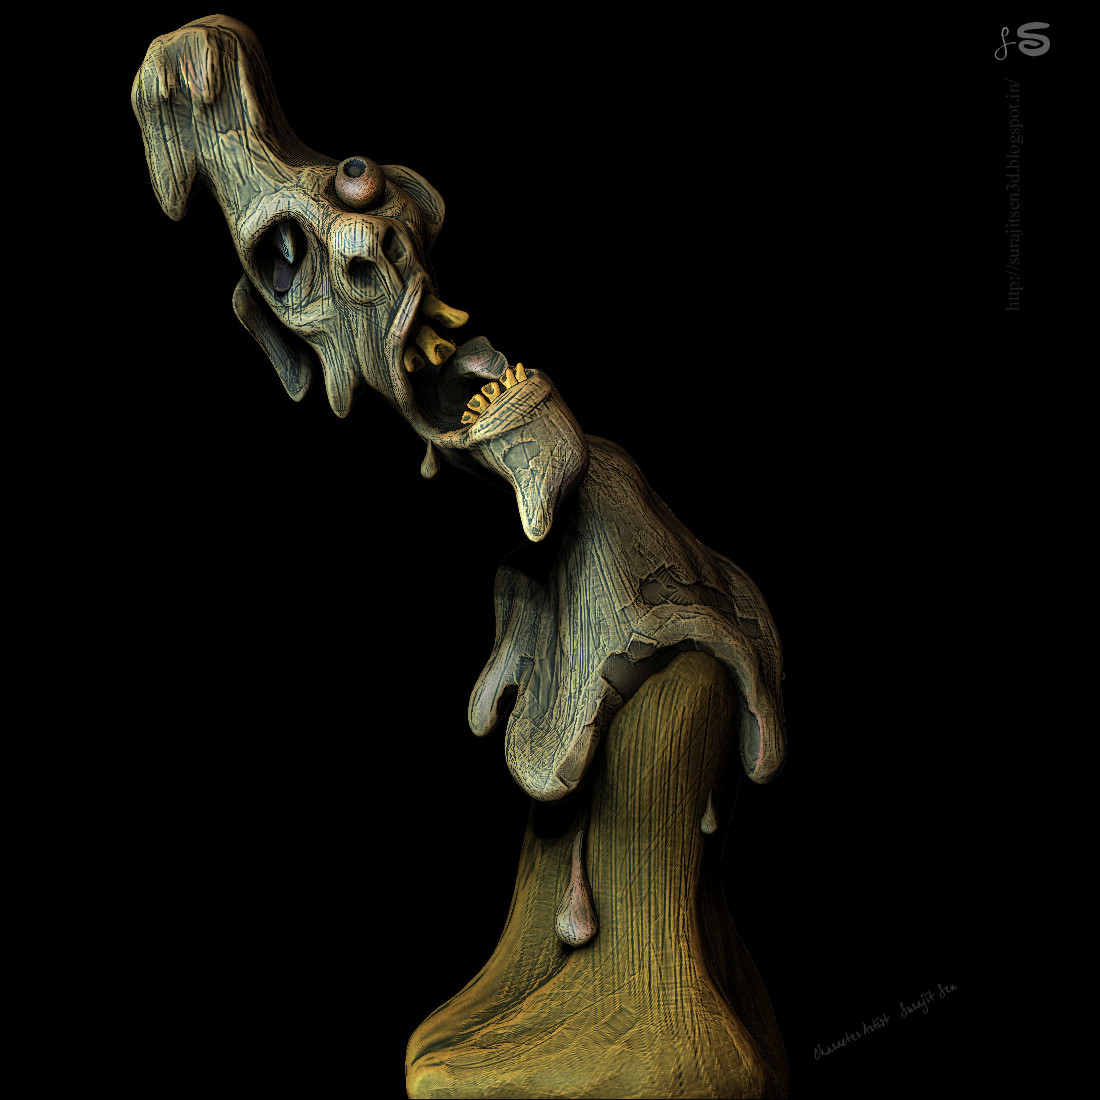 Halloween_Sculpt_SurajitSen_2017.